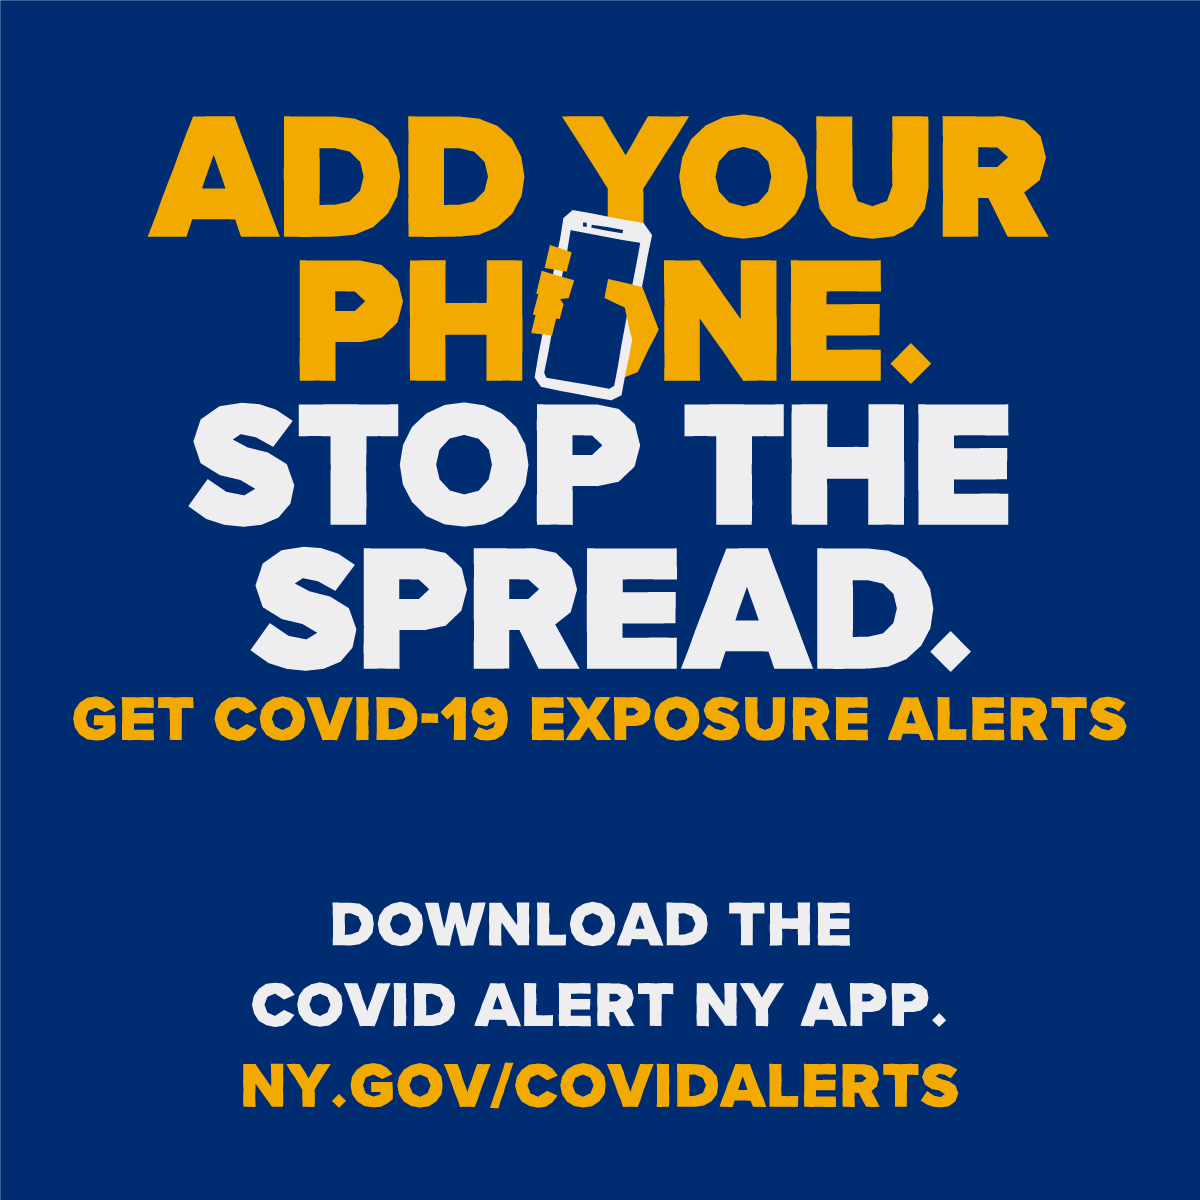 Get tested, wear a mask and download the COVID Alert NY app today! We're all in this together. Visit  to help protect your community while maintaining your privacy. #addyourphone